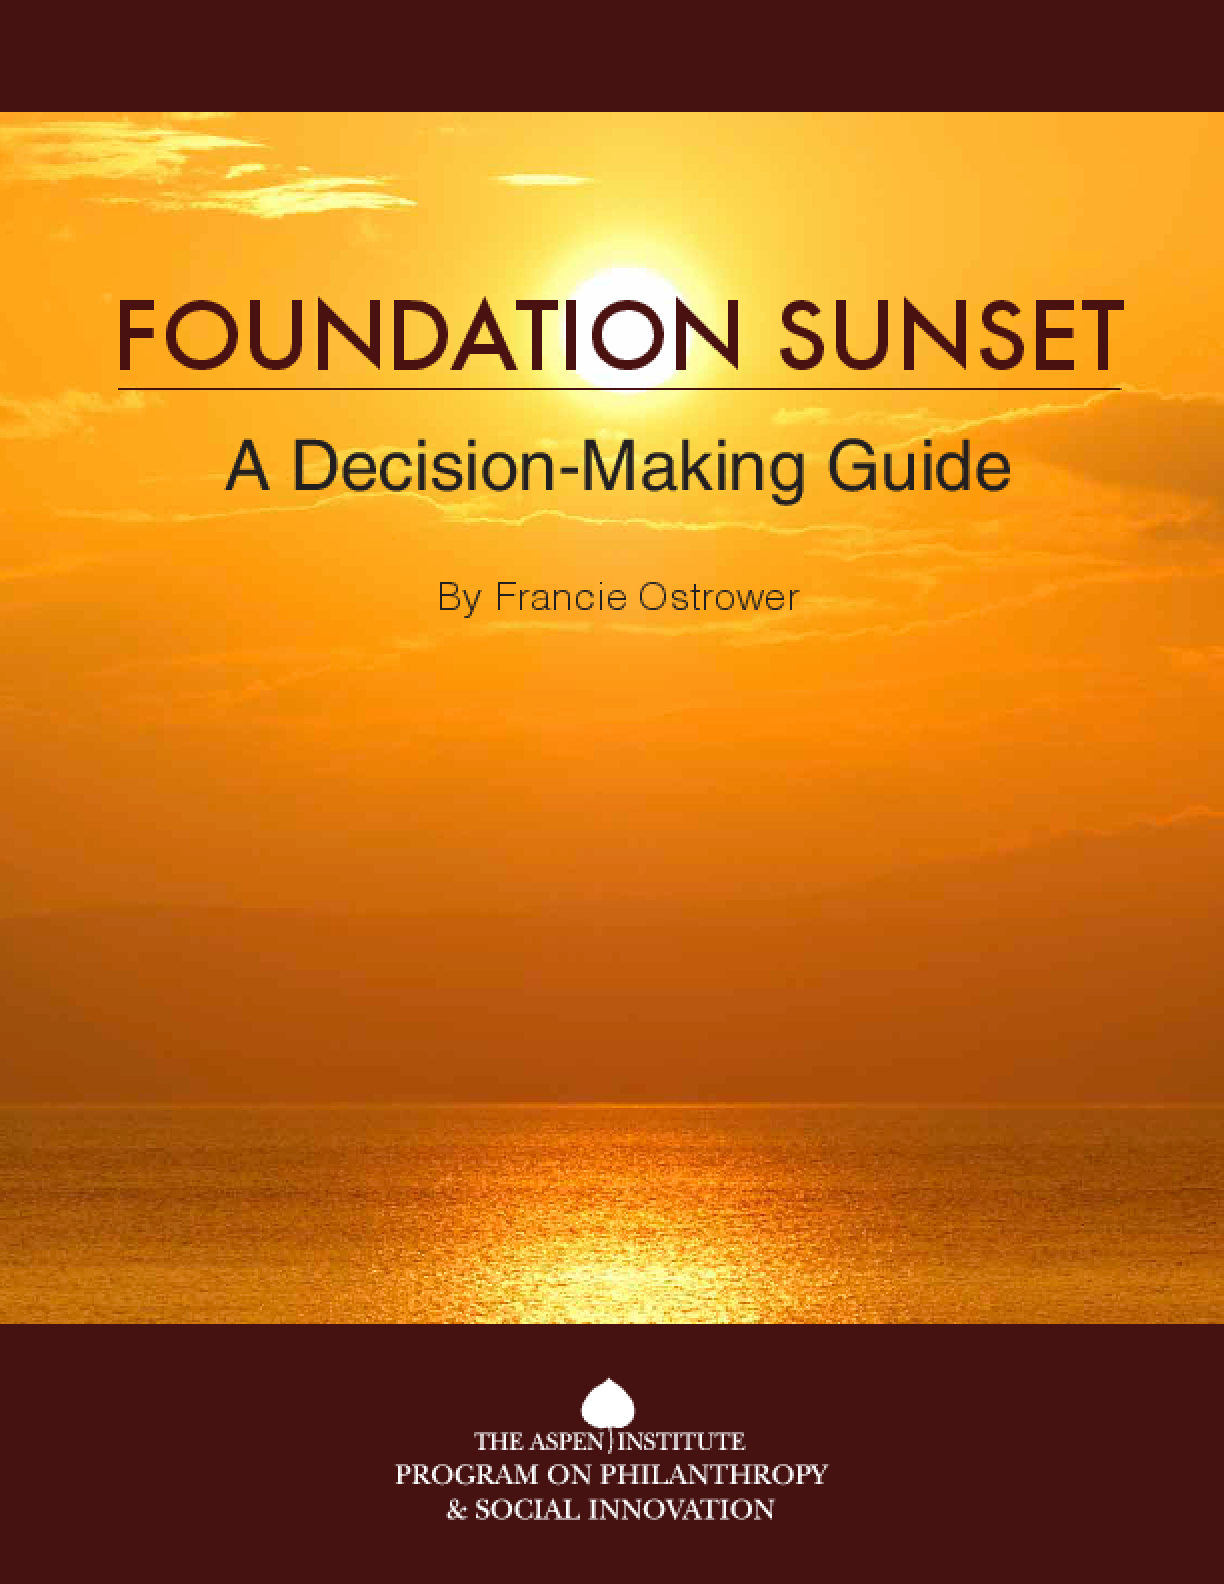 Foundation Sunset: A Decision-Making Guide